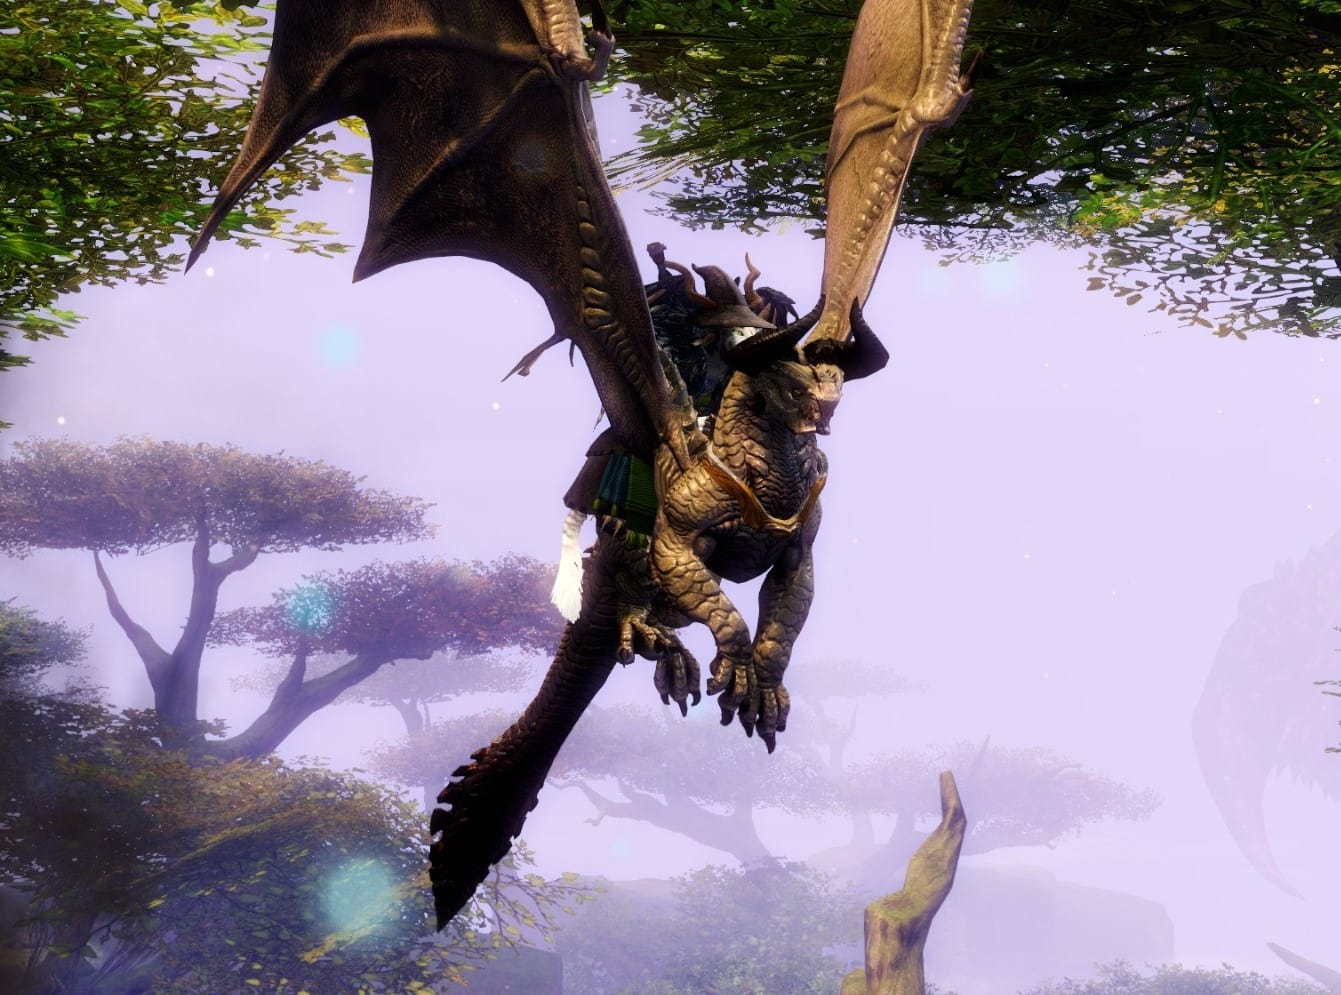 A player character from the video game GUILD WARS 2 lyng a Skyscale, a kind of bull-headed dragon.